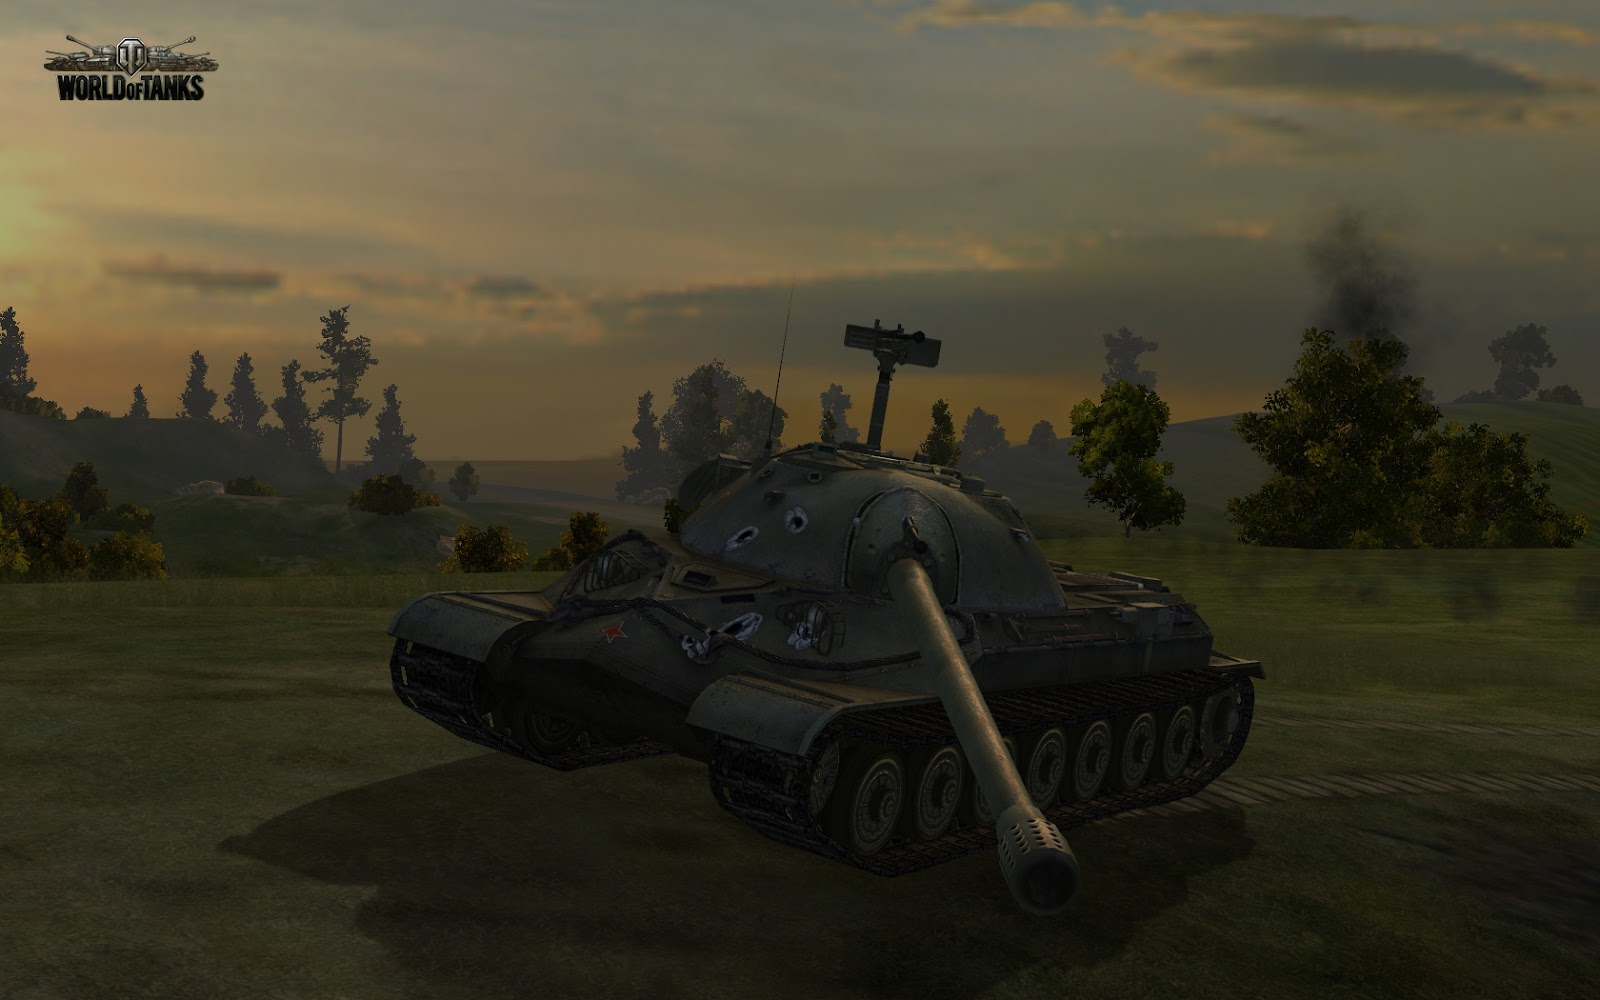 http://3.bp.blogspot.com/-iiEpof8dd6w/T64bBWBzm6I/AAAAAAAAAMM/gGshvjhvfF8/s1600/wallpaper-world-of-tanks-mmo-2.jpg